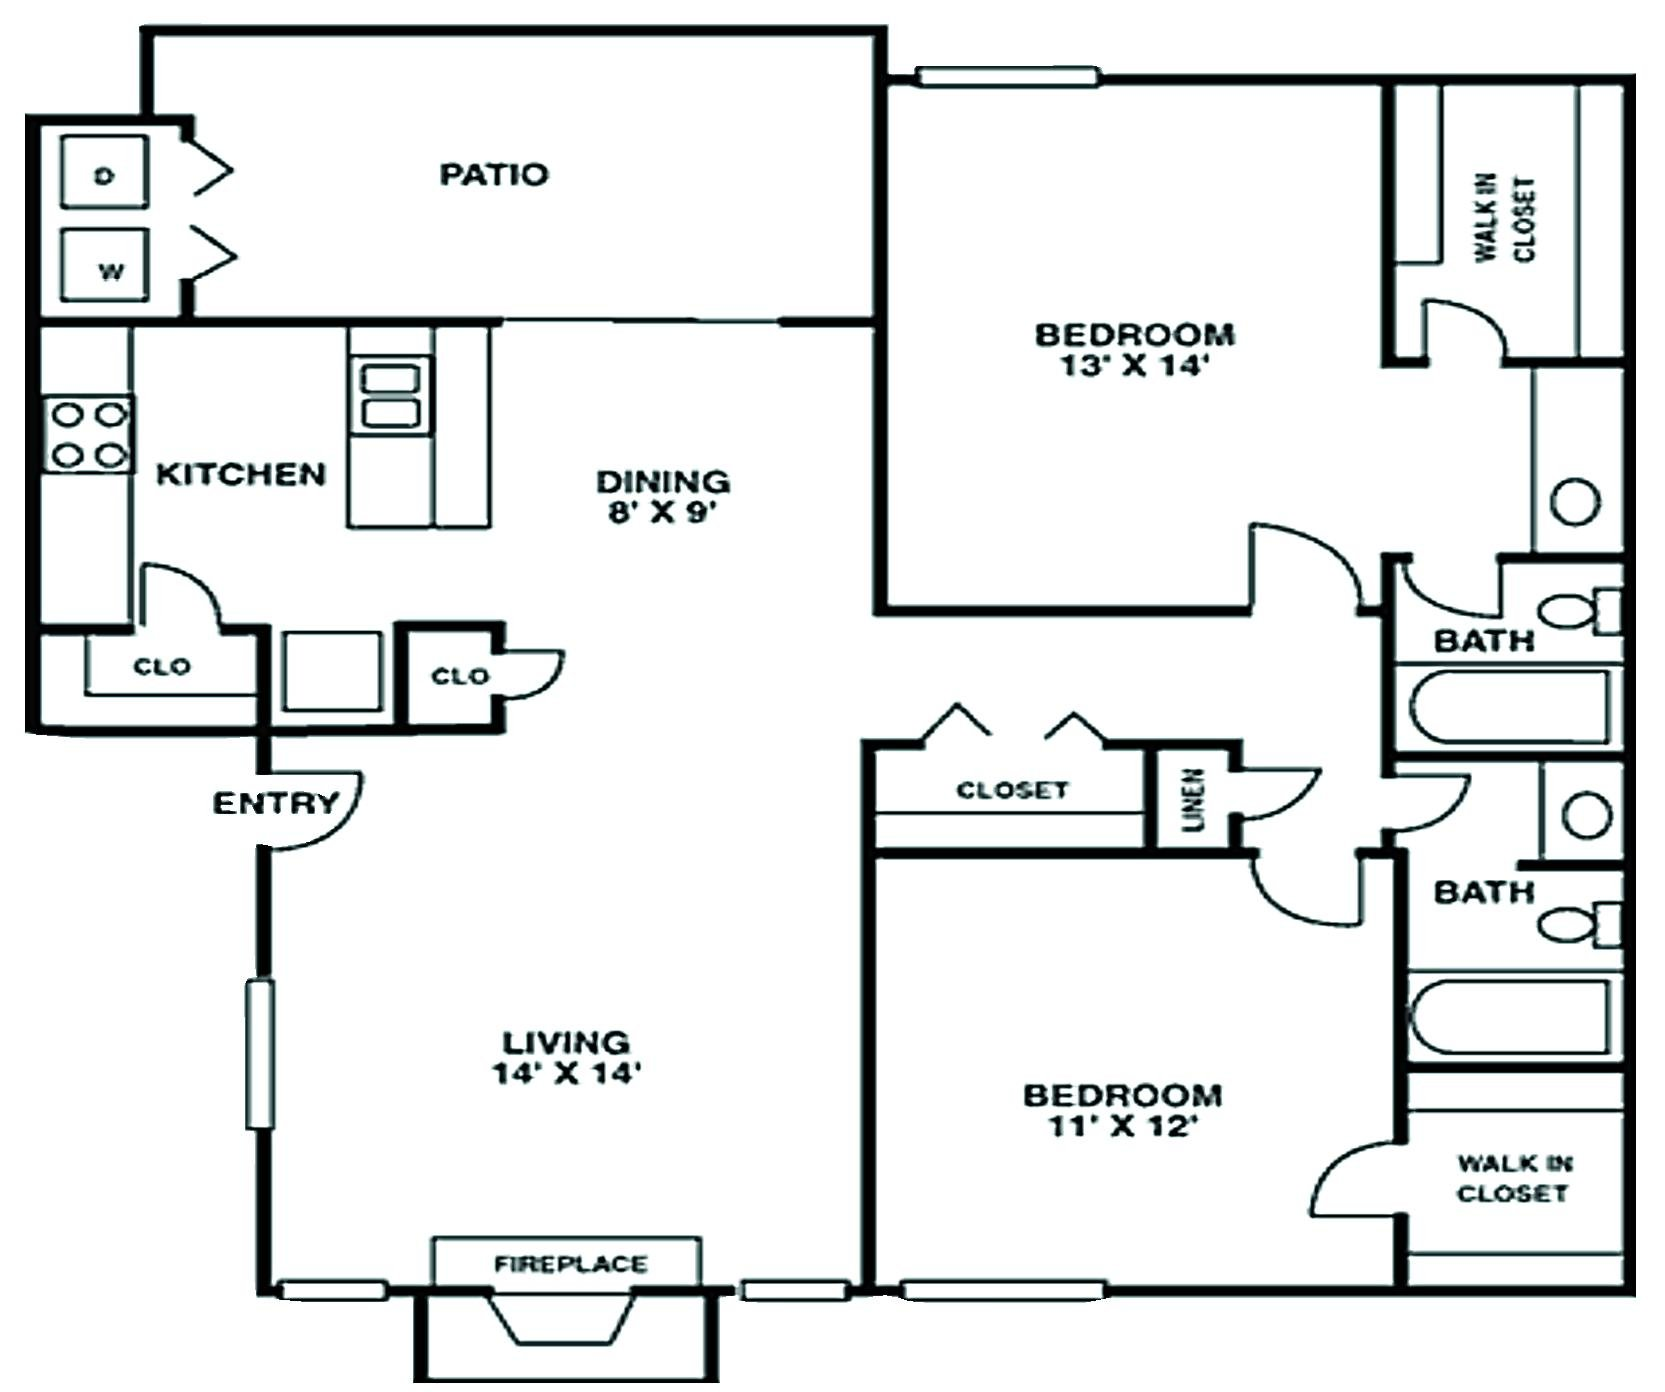 Crescent at Cityview Floor Plan 2 bed 1 bath 1033 sq ft